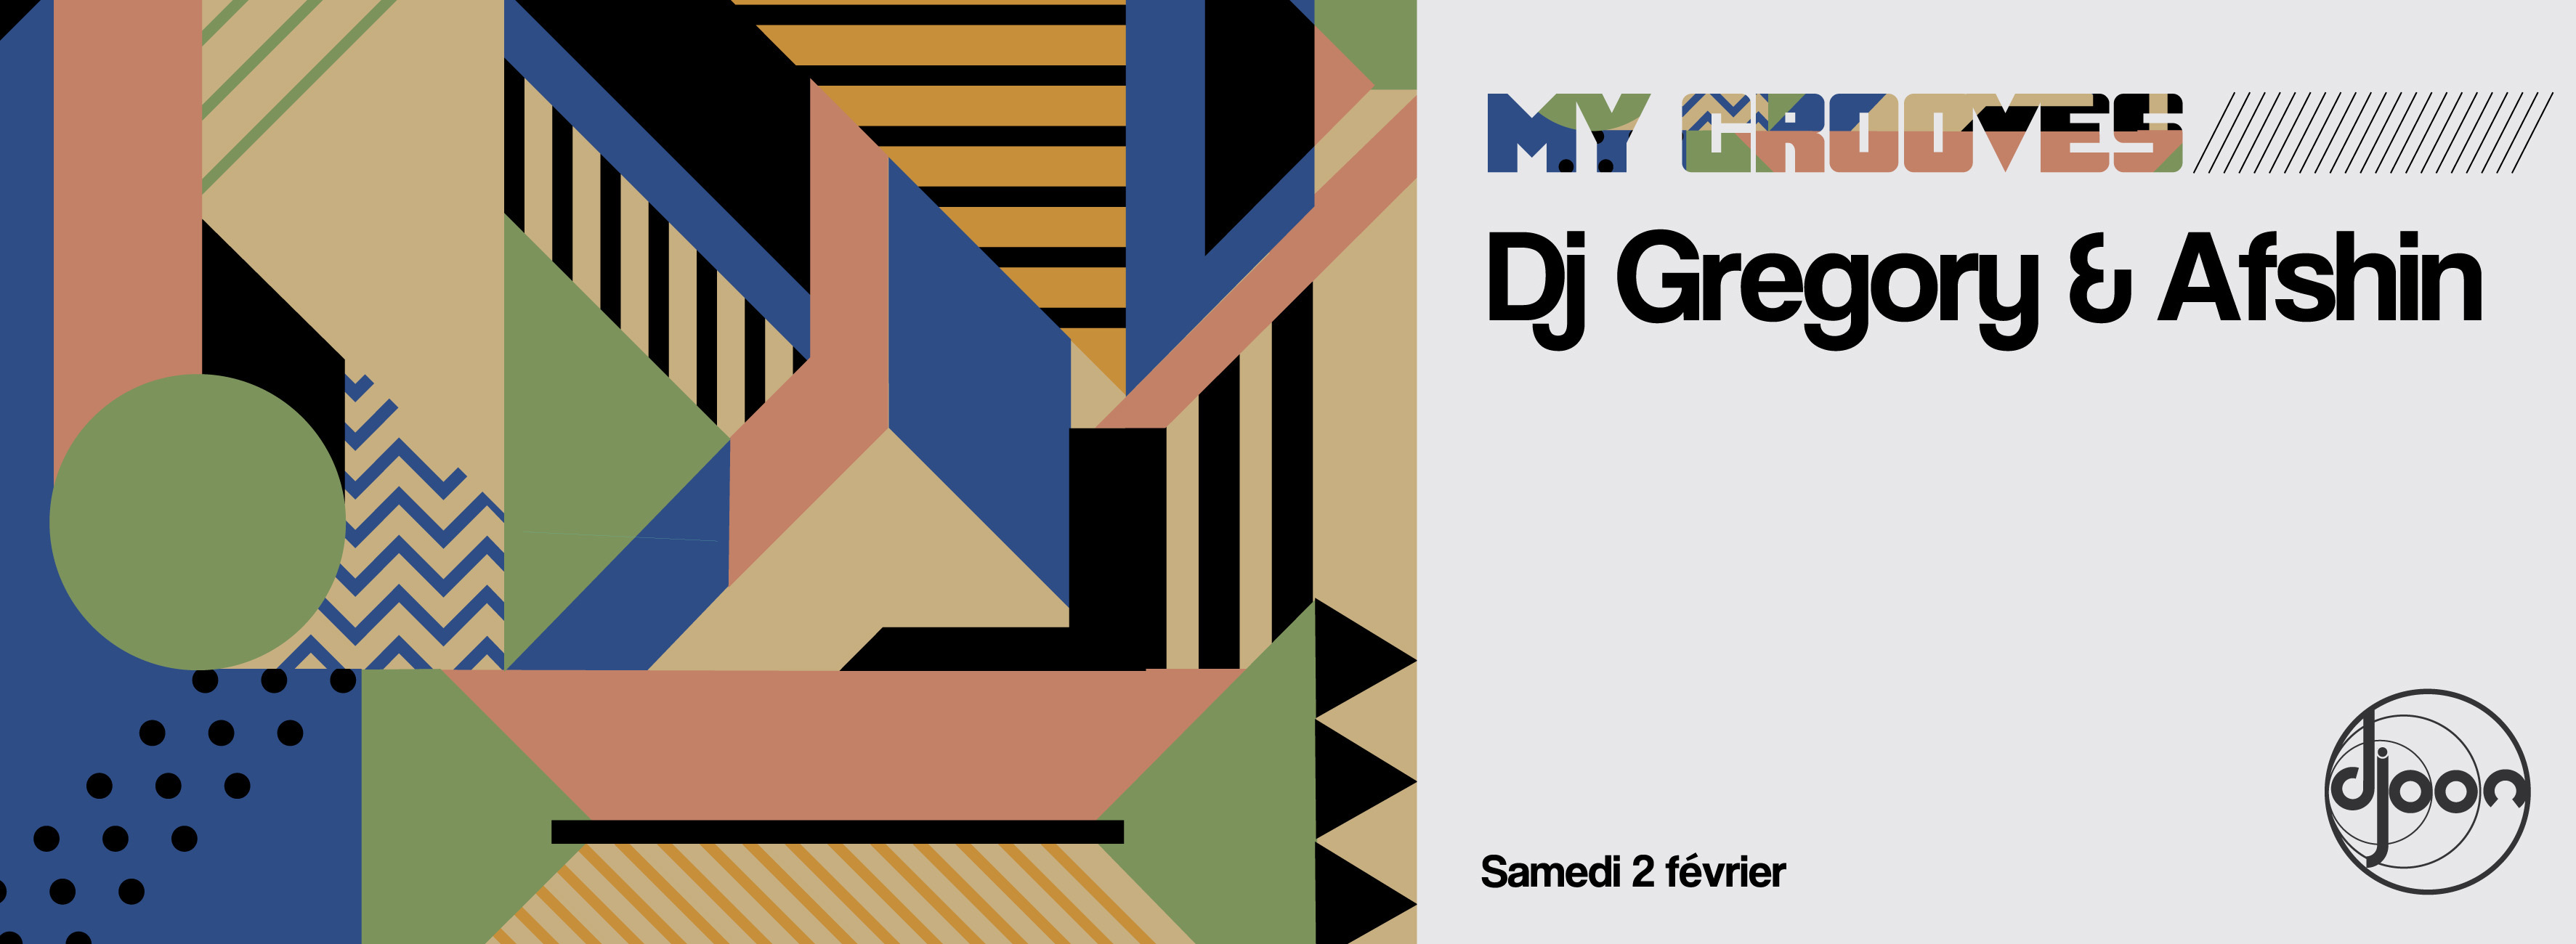 My Grooves: DJ Gregory & Afshin